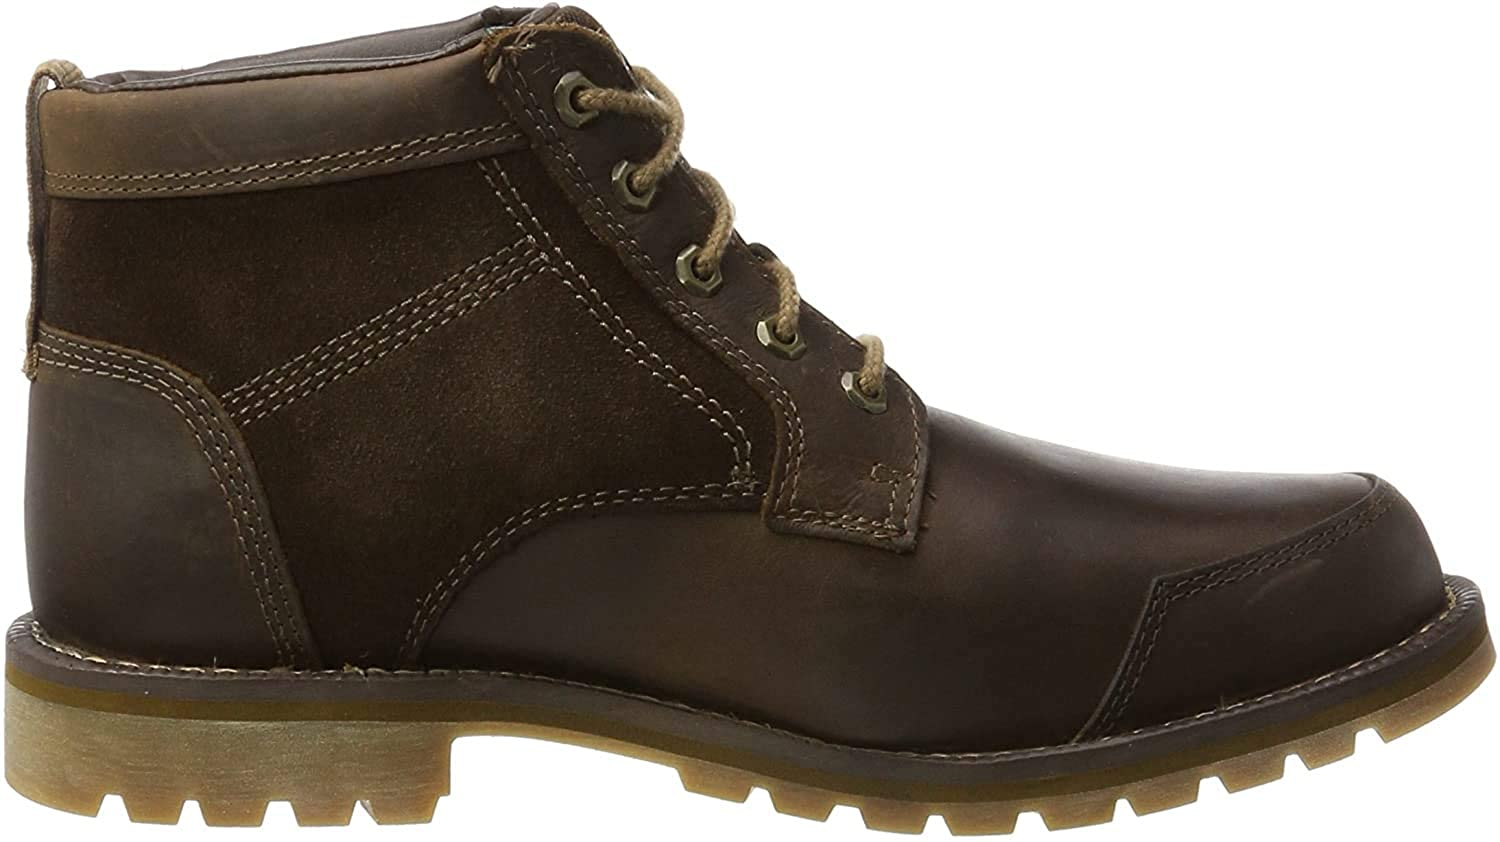 Timberland Mens Larchmont Waterproof Chukka Nubuck Leather Boots